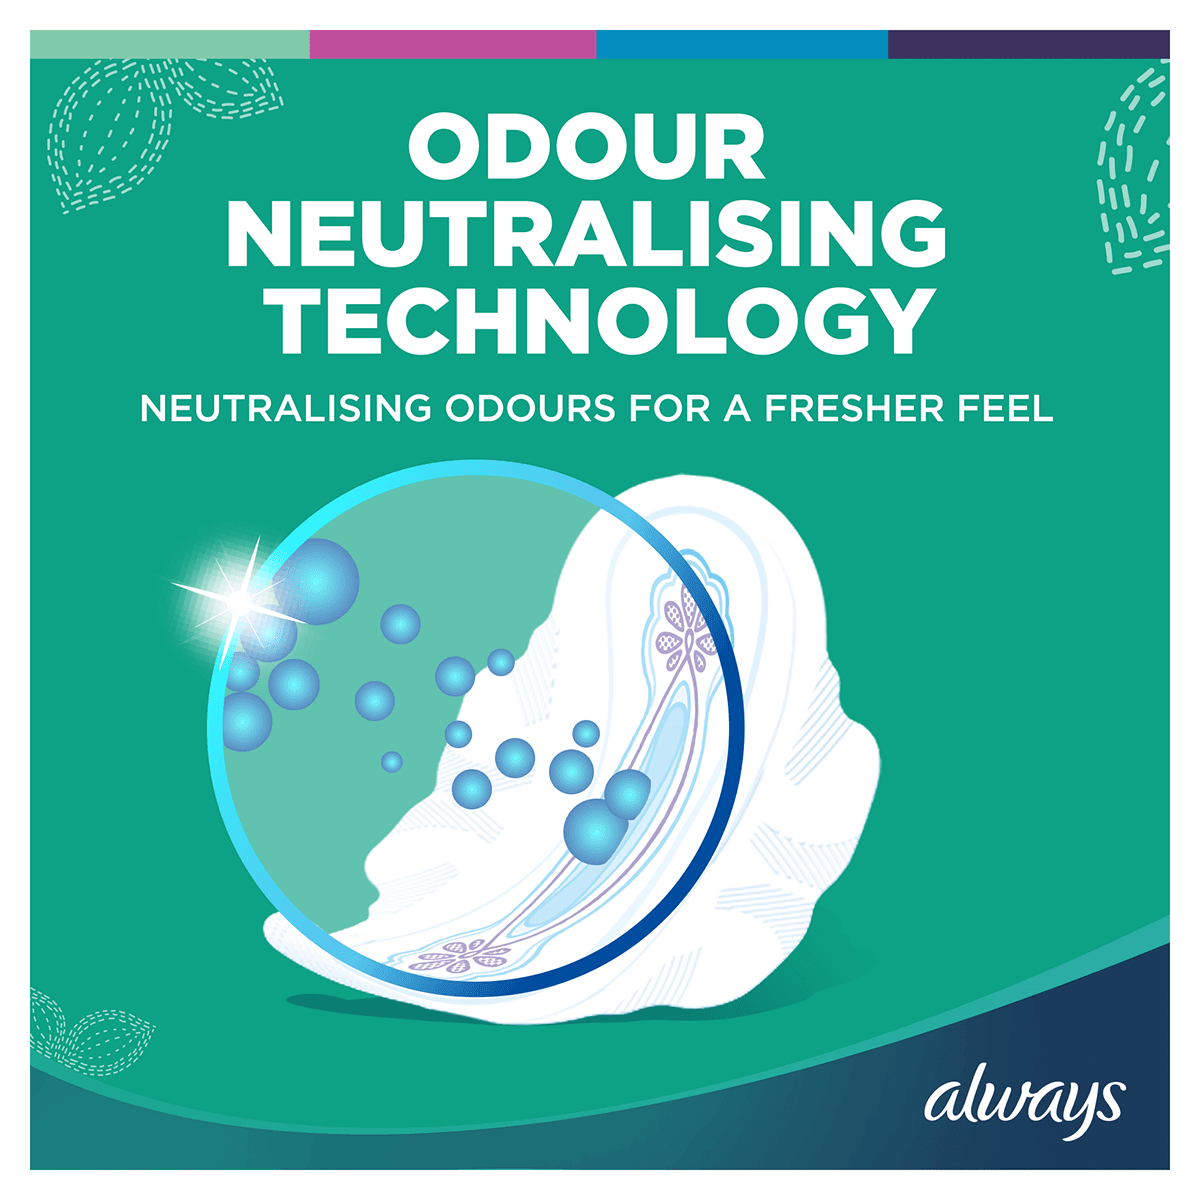 ALWAYS Ultra Normal Wings Sanitary Towel Menstrual Cycle Odour Neutralising Technology